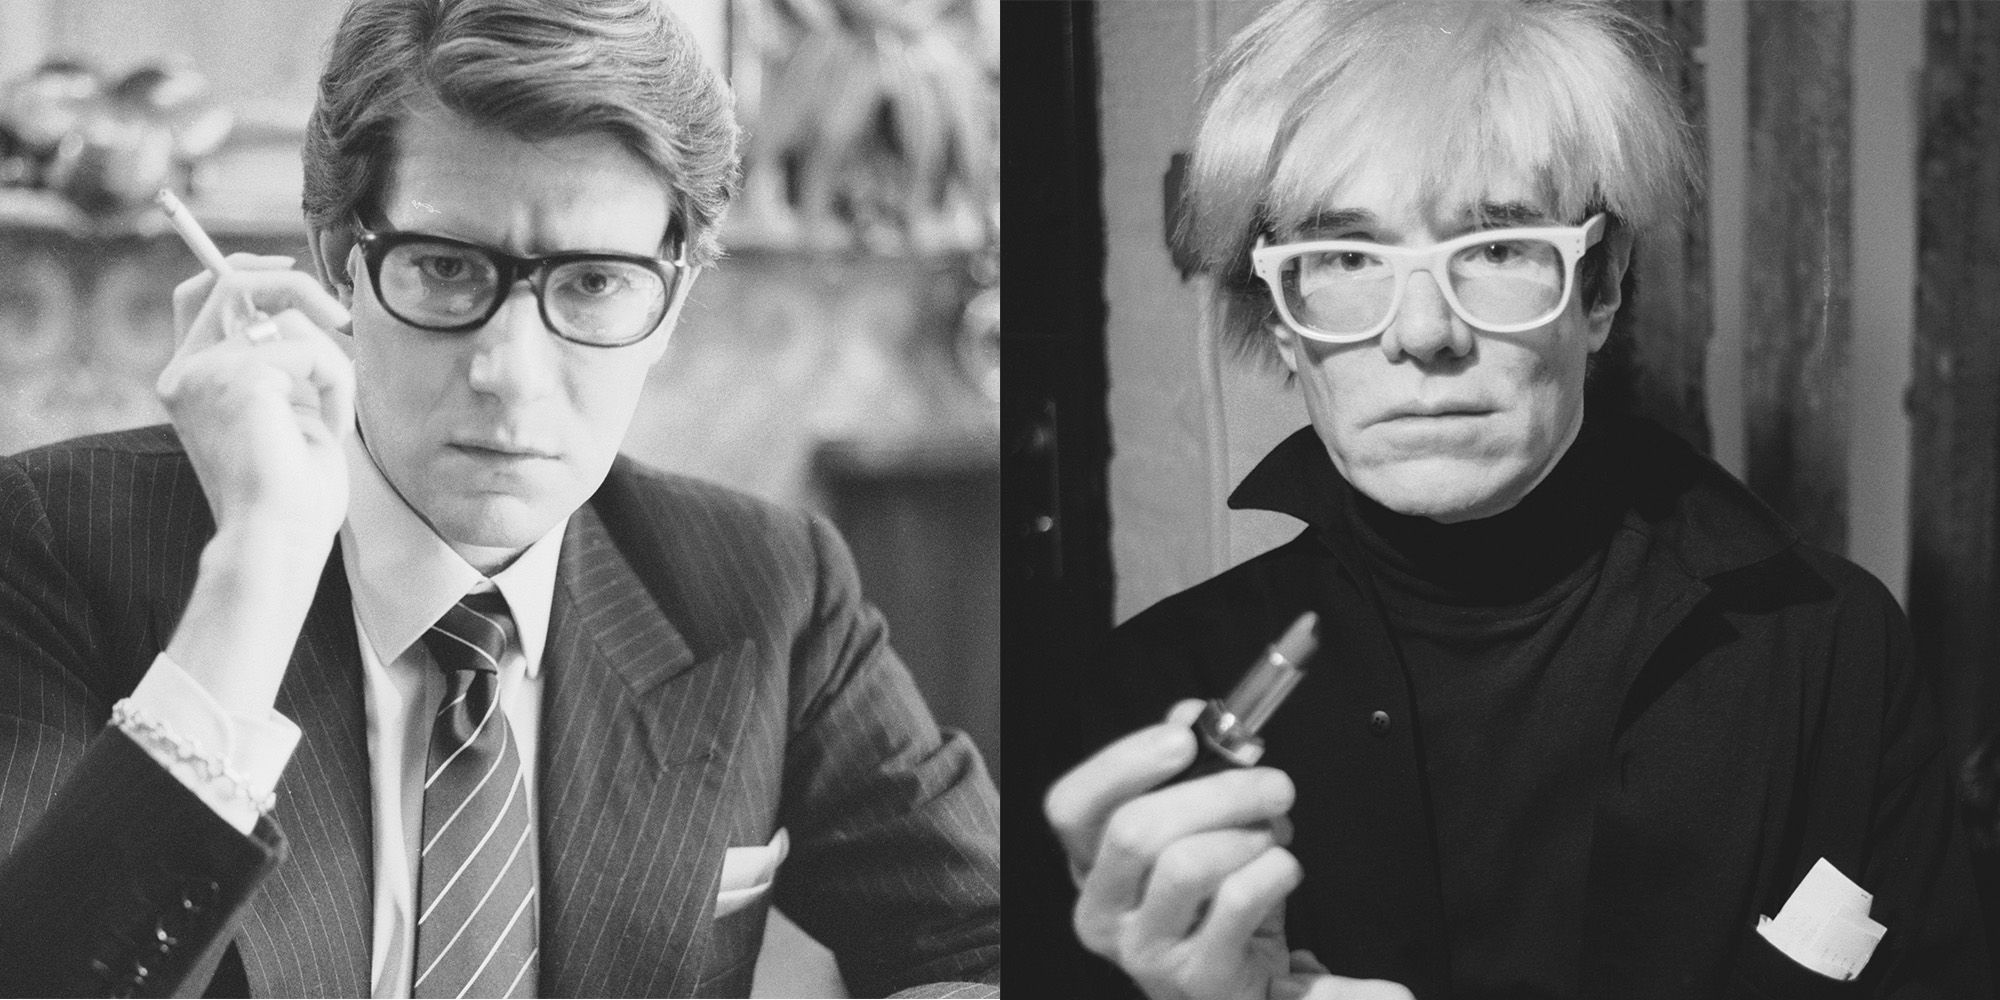 Yves Saint Laurent's Letter to Andy Warhol